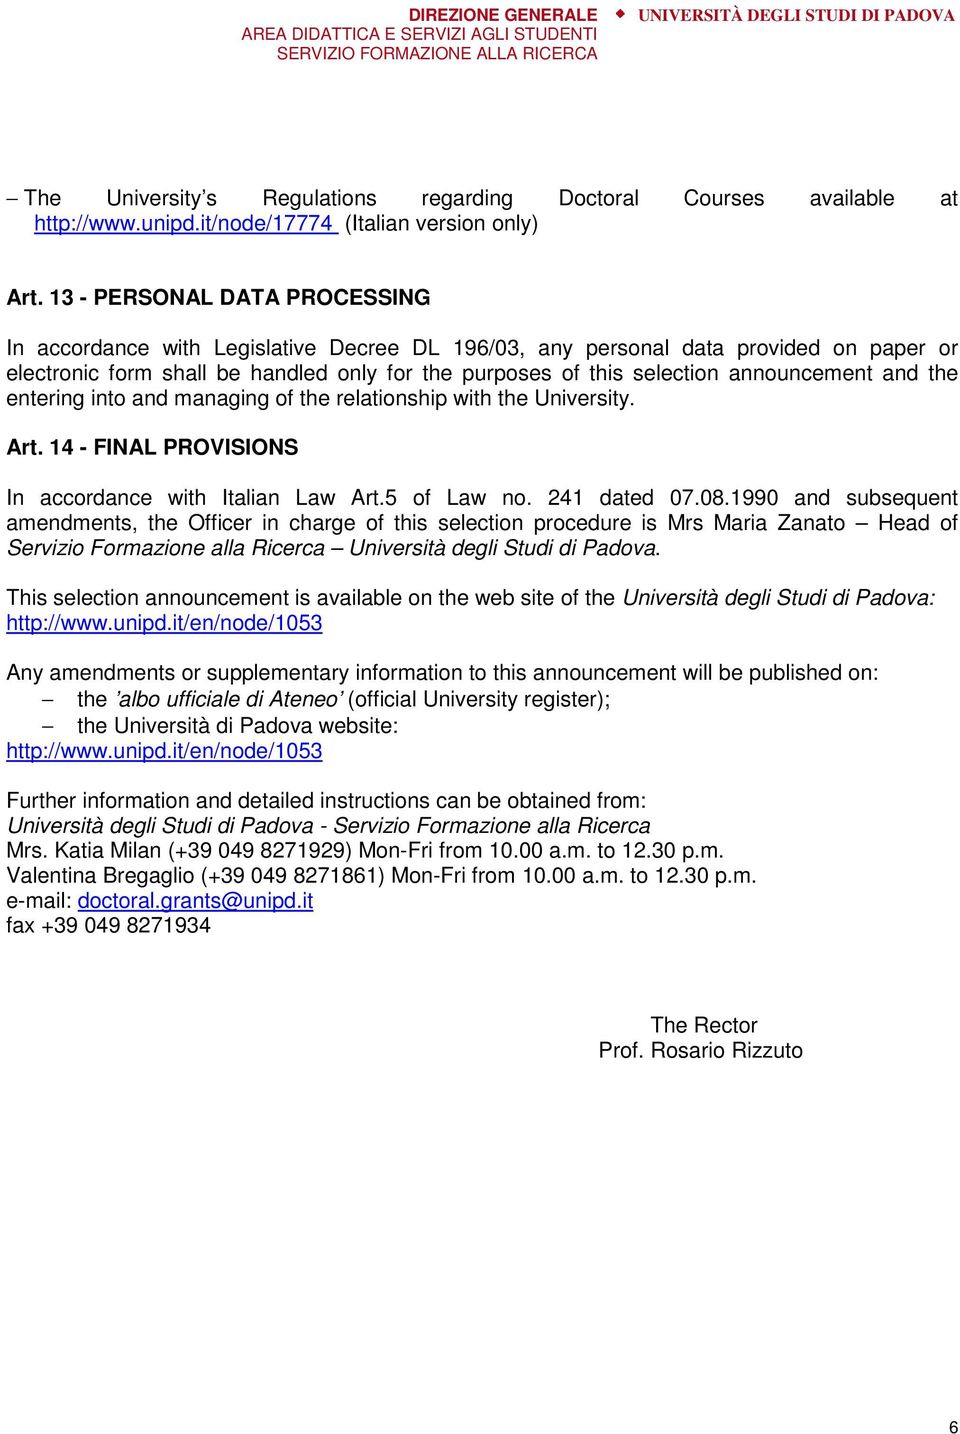 announcement and the entering into and managing of the relationship with the University. Art. 14 - FINAL PROVISIONS In accordance with Italian Law Art.5 of Law no. 241 dated 07.08.